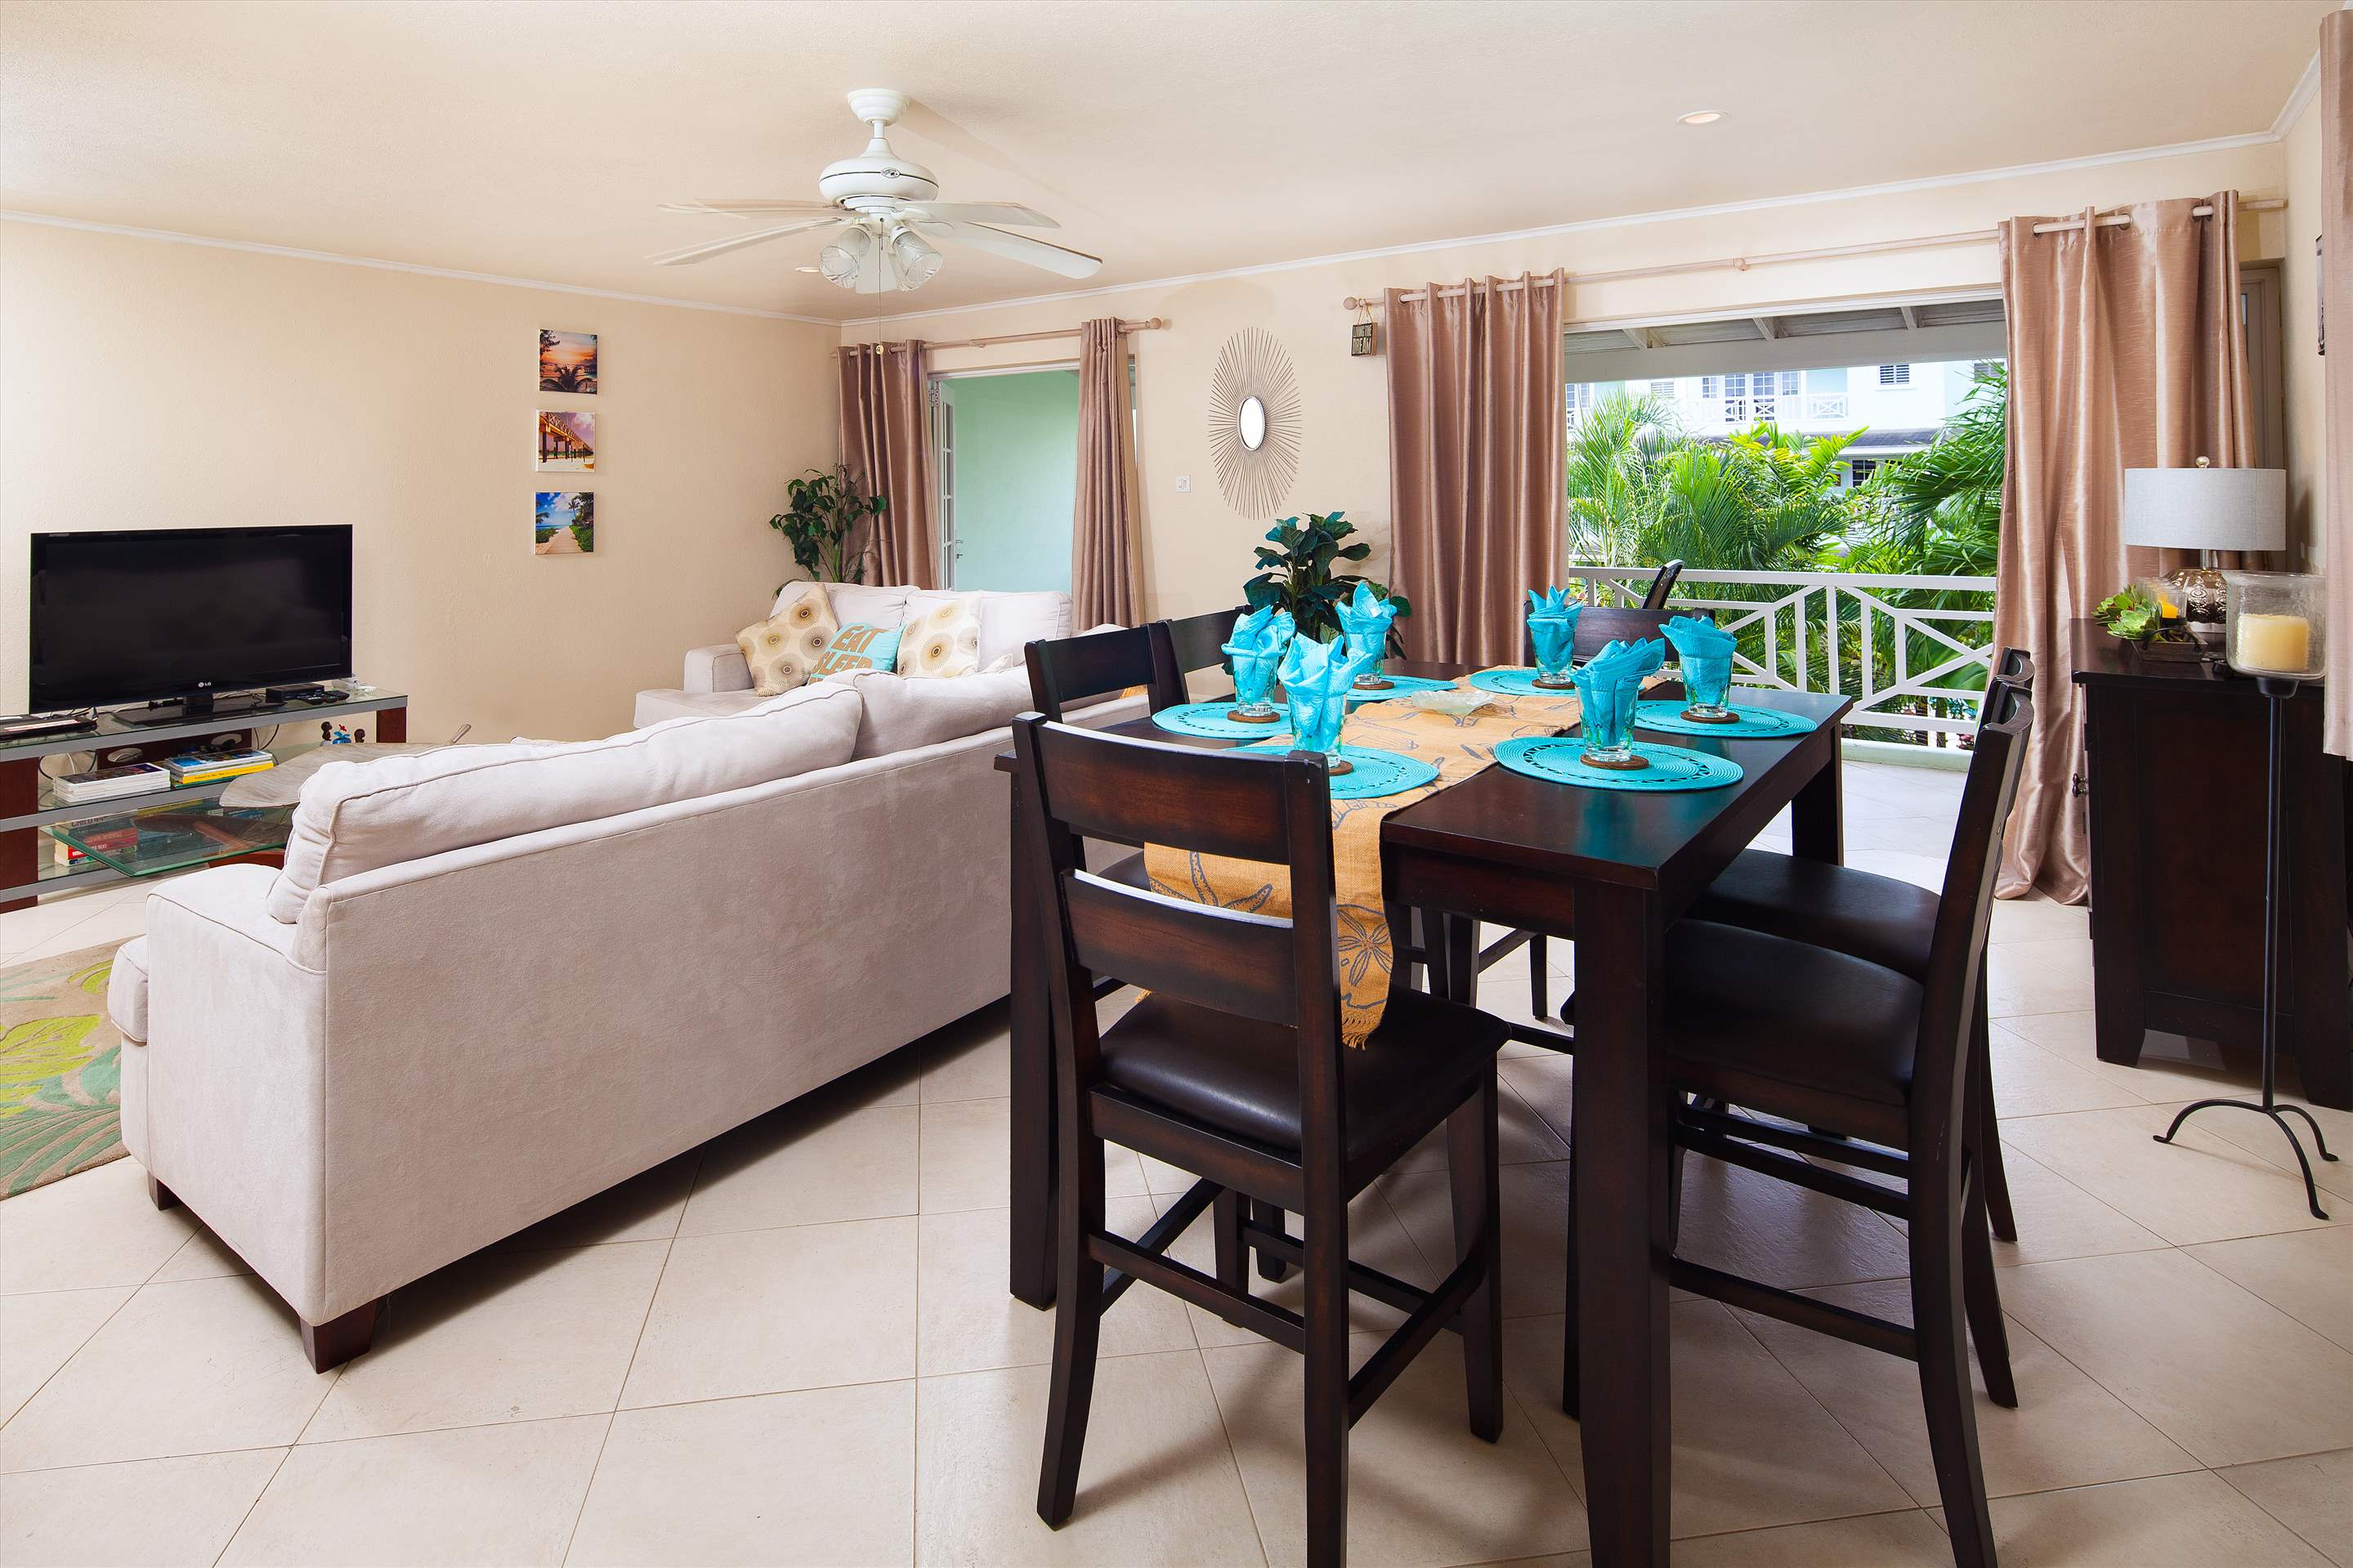 Margate Gardens 4, 3 bedroom, 3 bedroom apartment in St. Lawrence Gap & South Coast, Barbados Photo #4